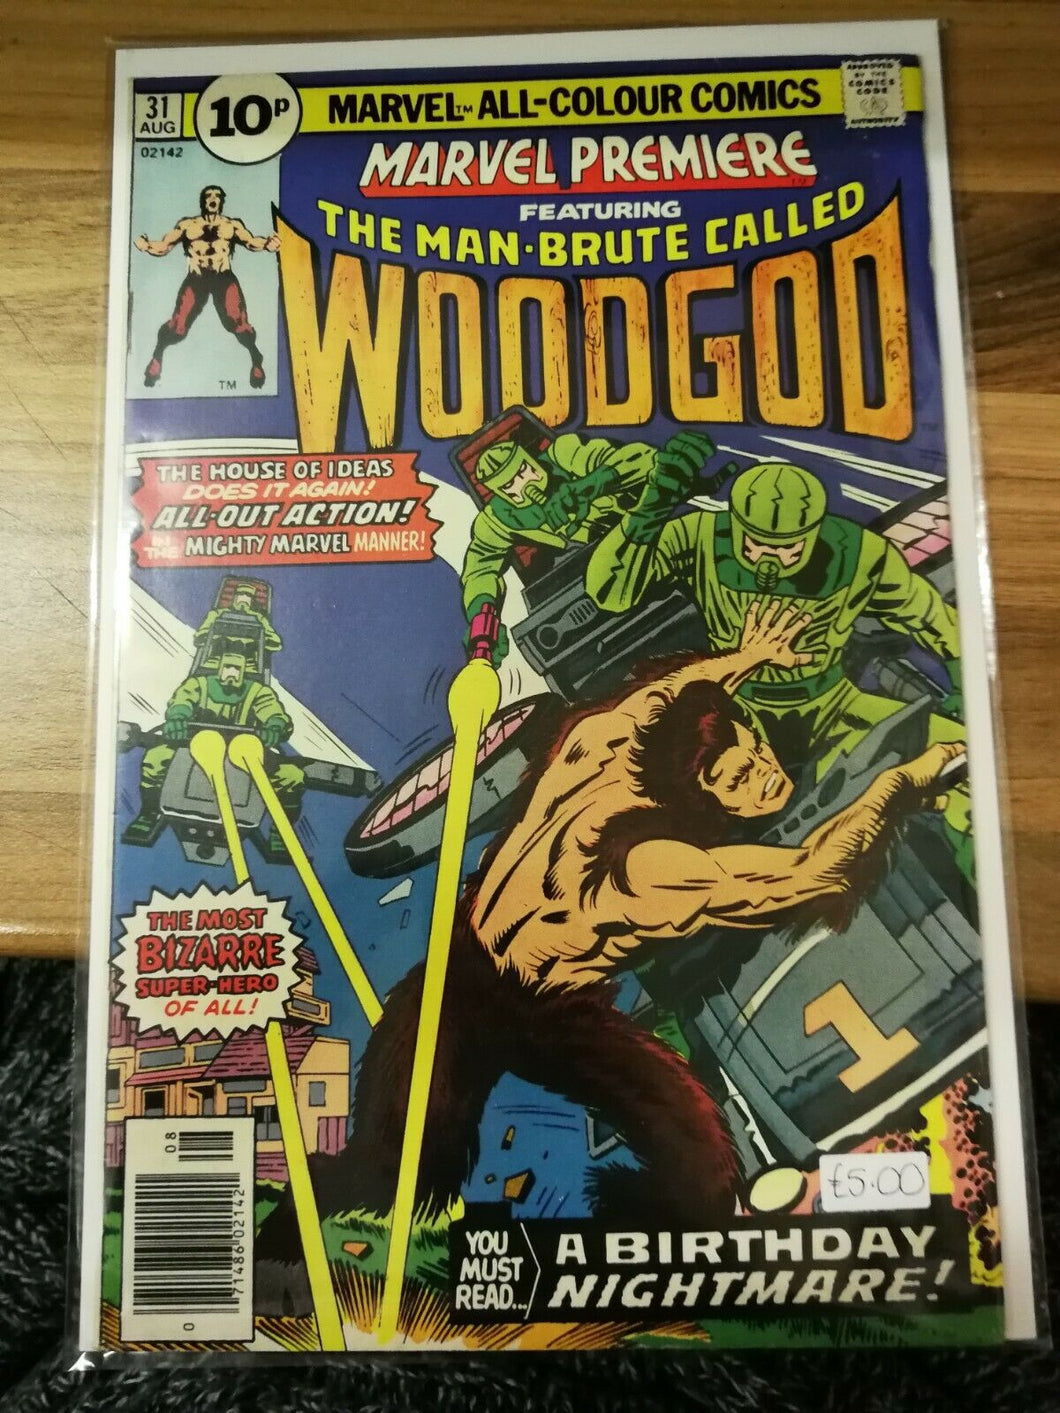 Marvel Premier Ft. The Man-Brute Called Woodgod #31